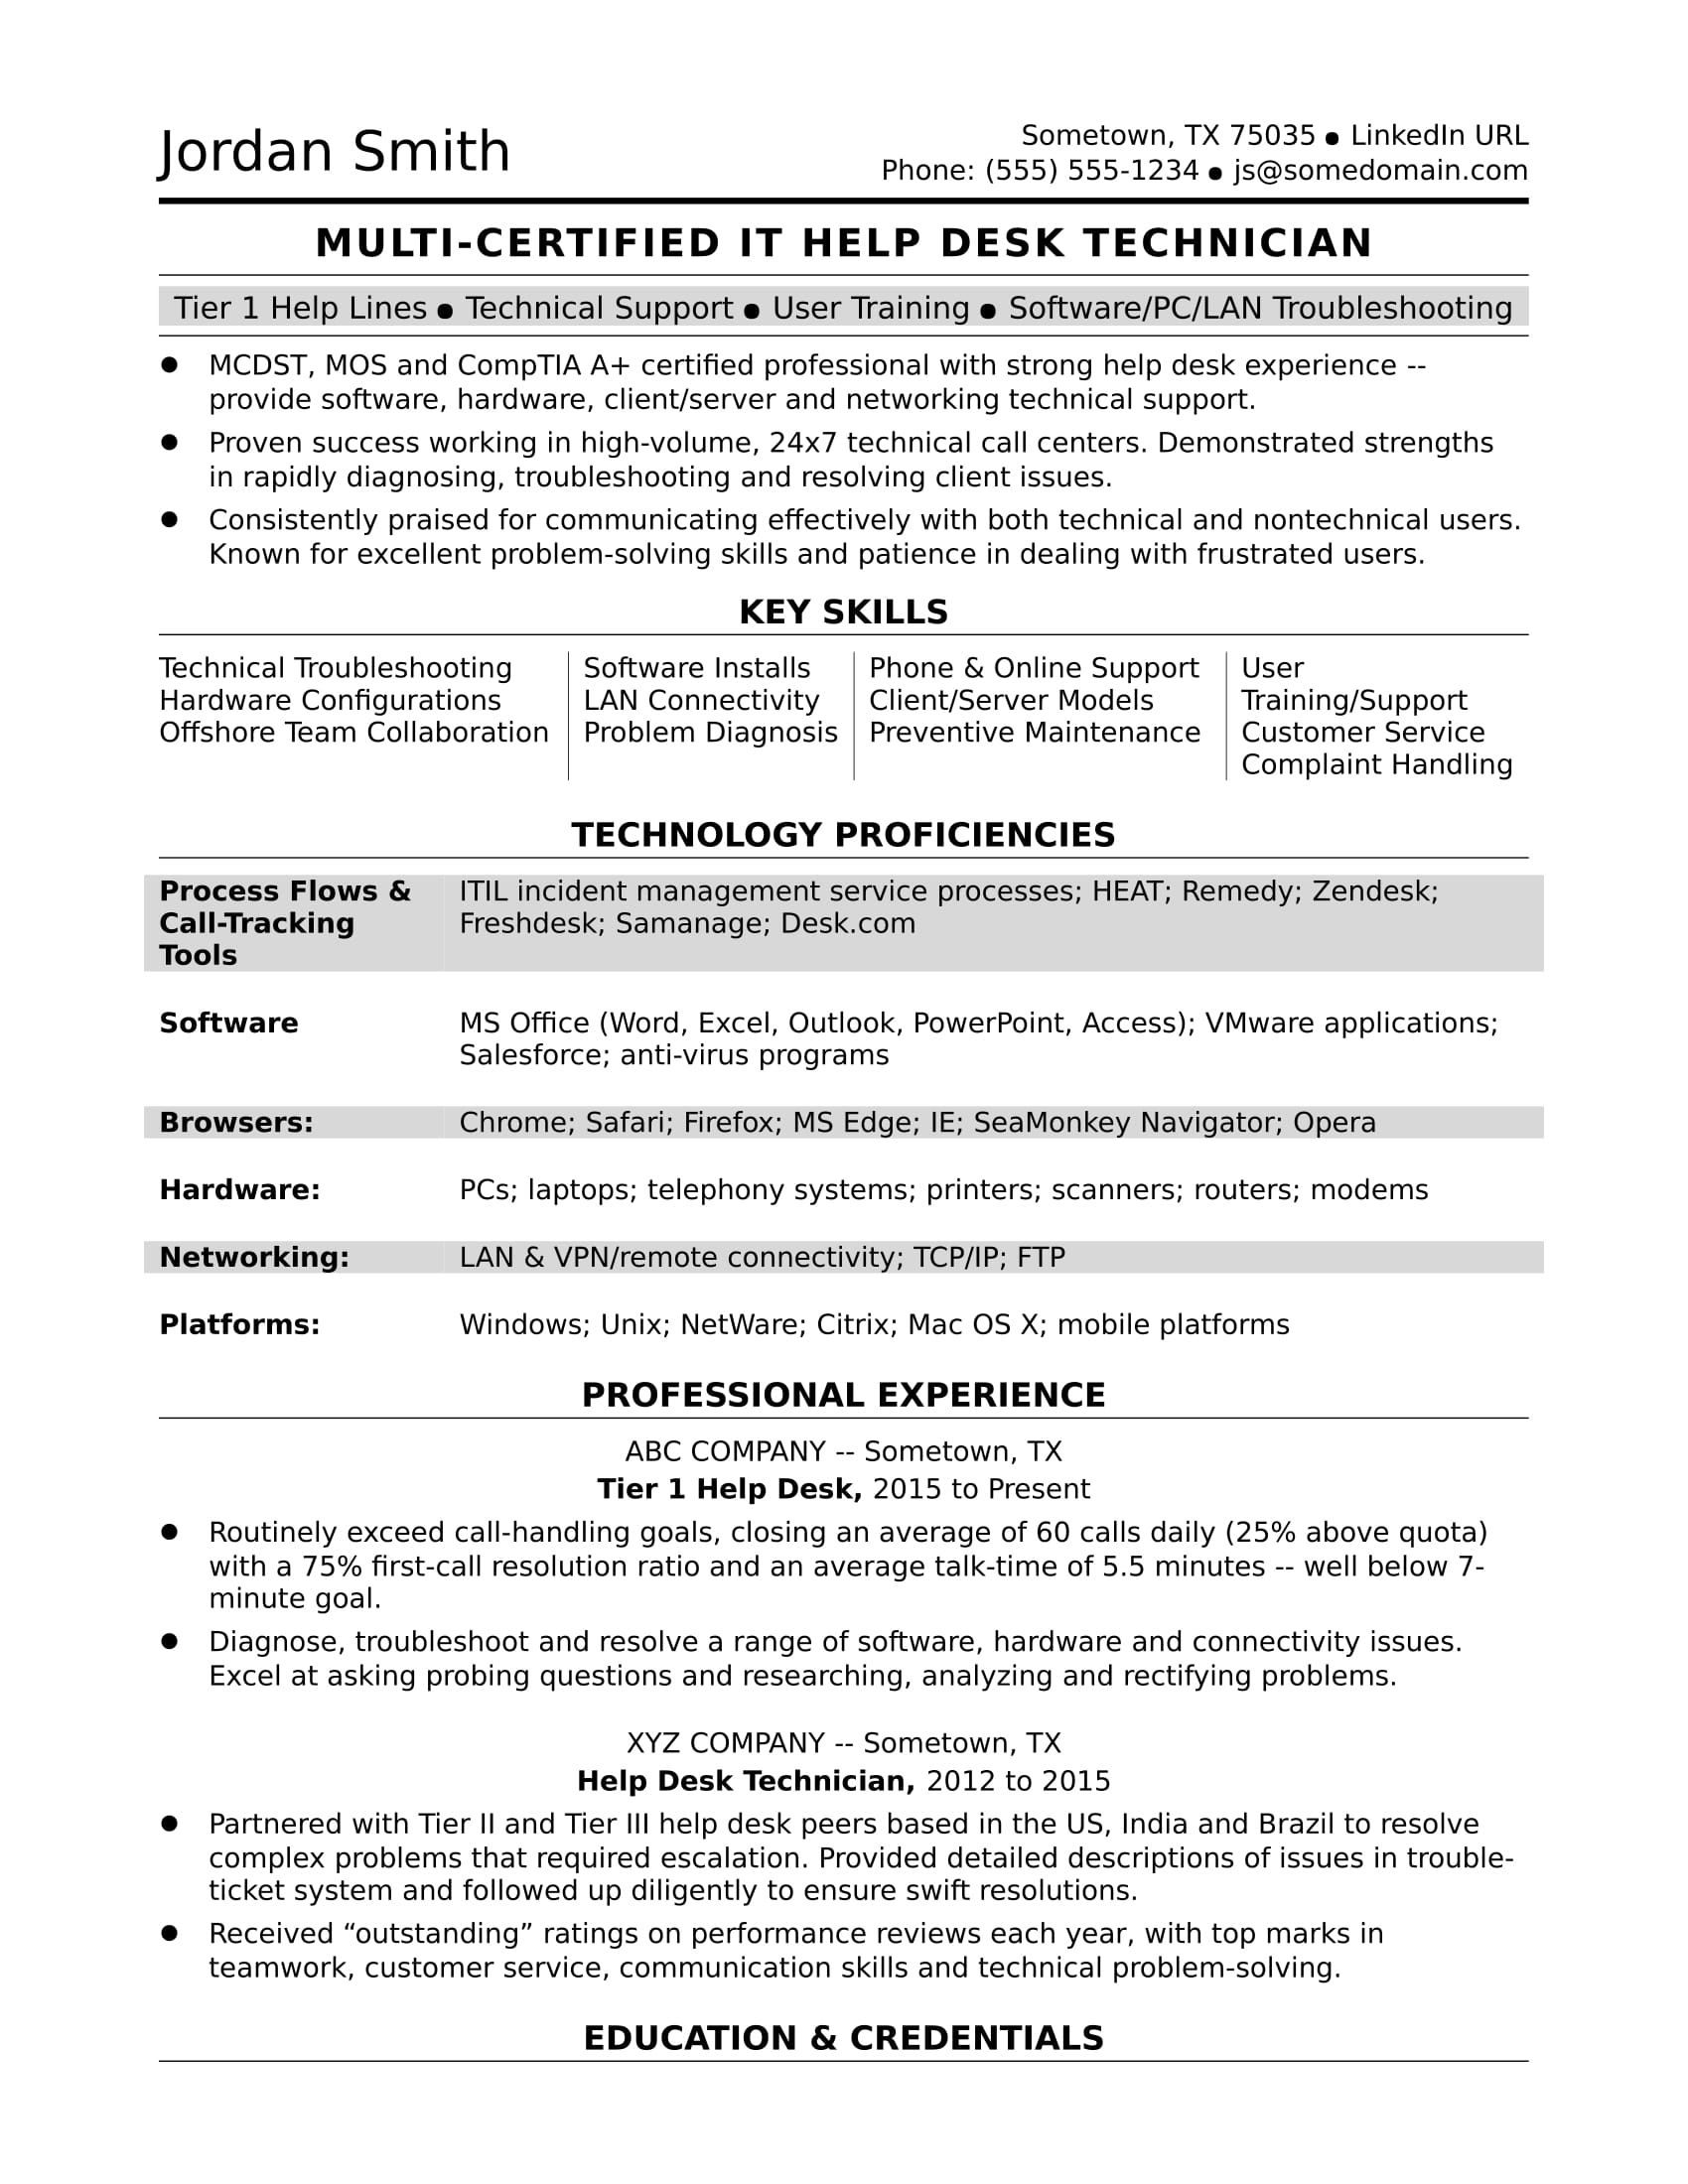 sample resume for midlevel it help desk professional monster troubleshooting skills coach Resume Troubleshooting Skills Resume